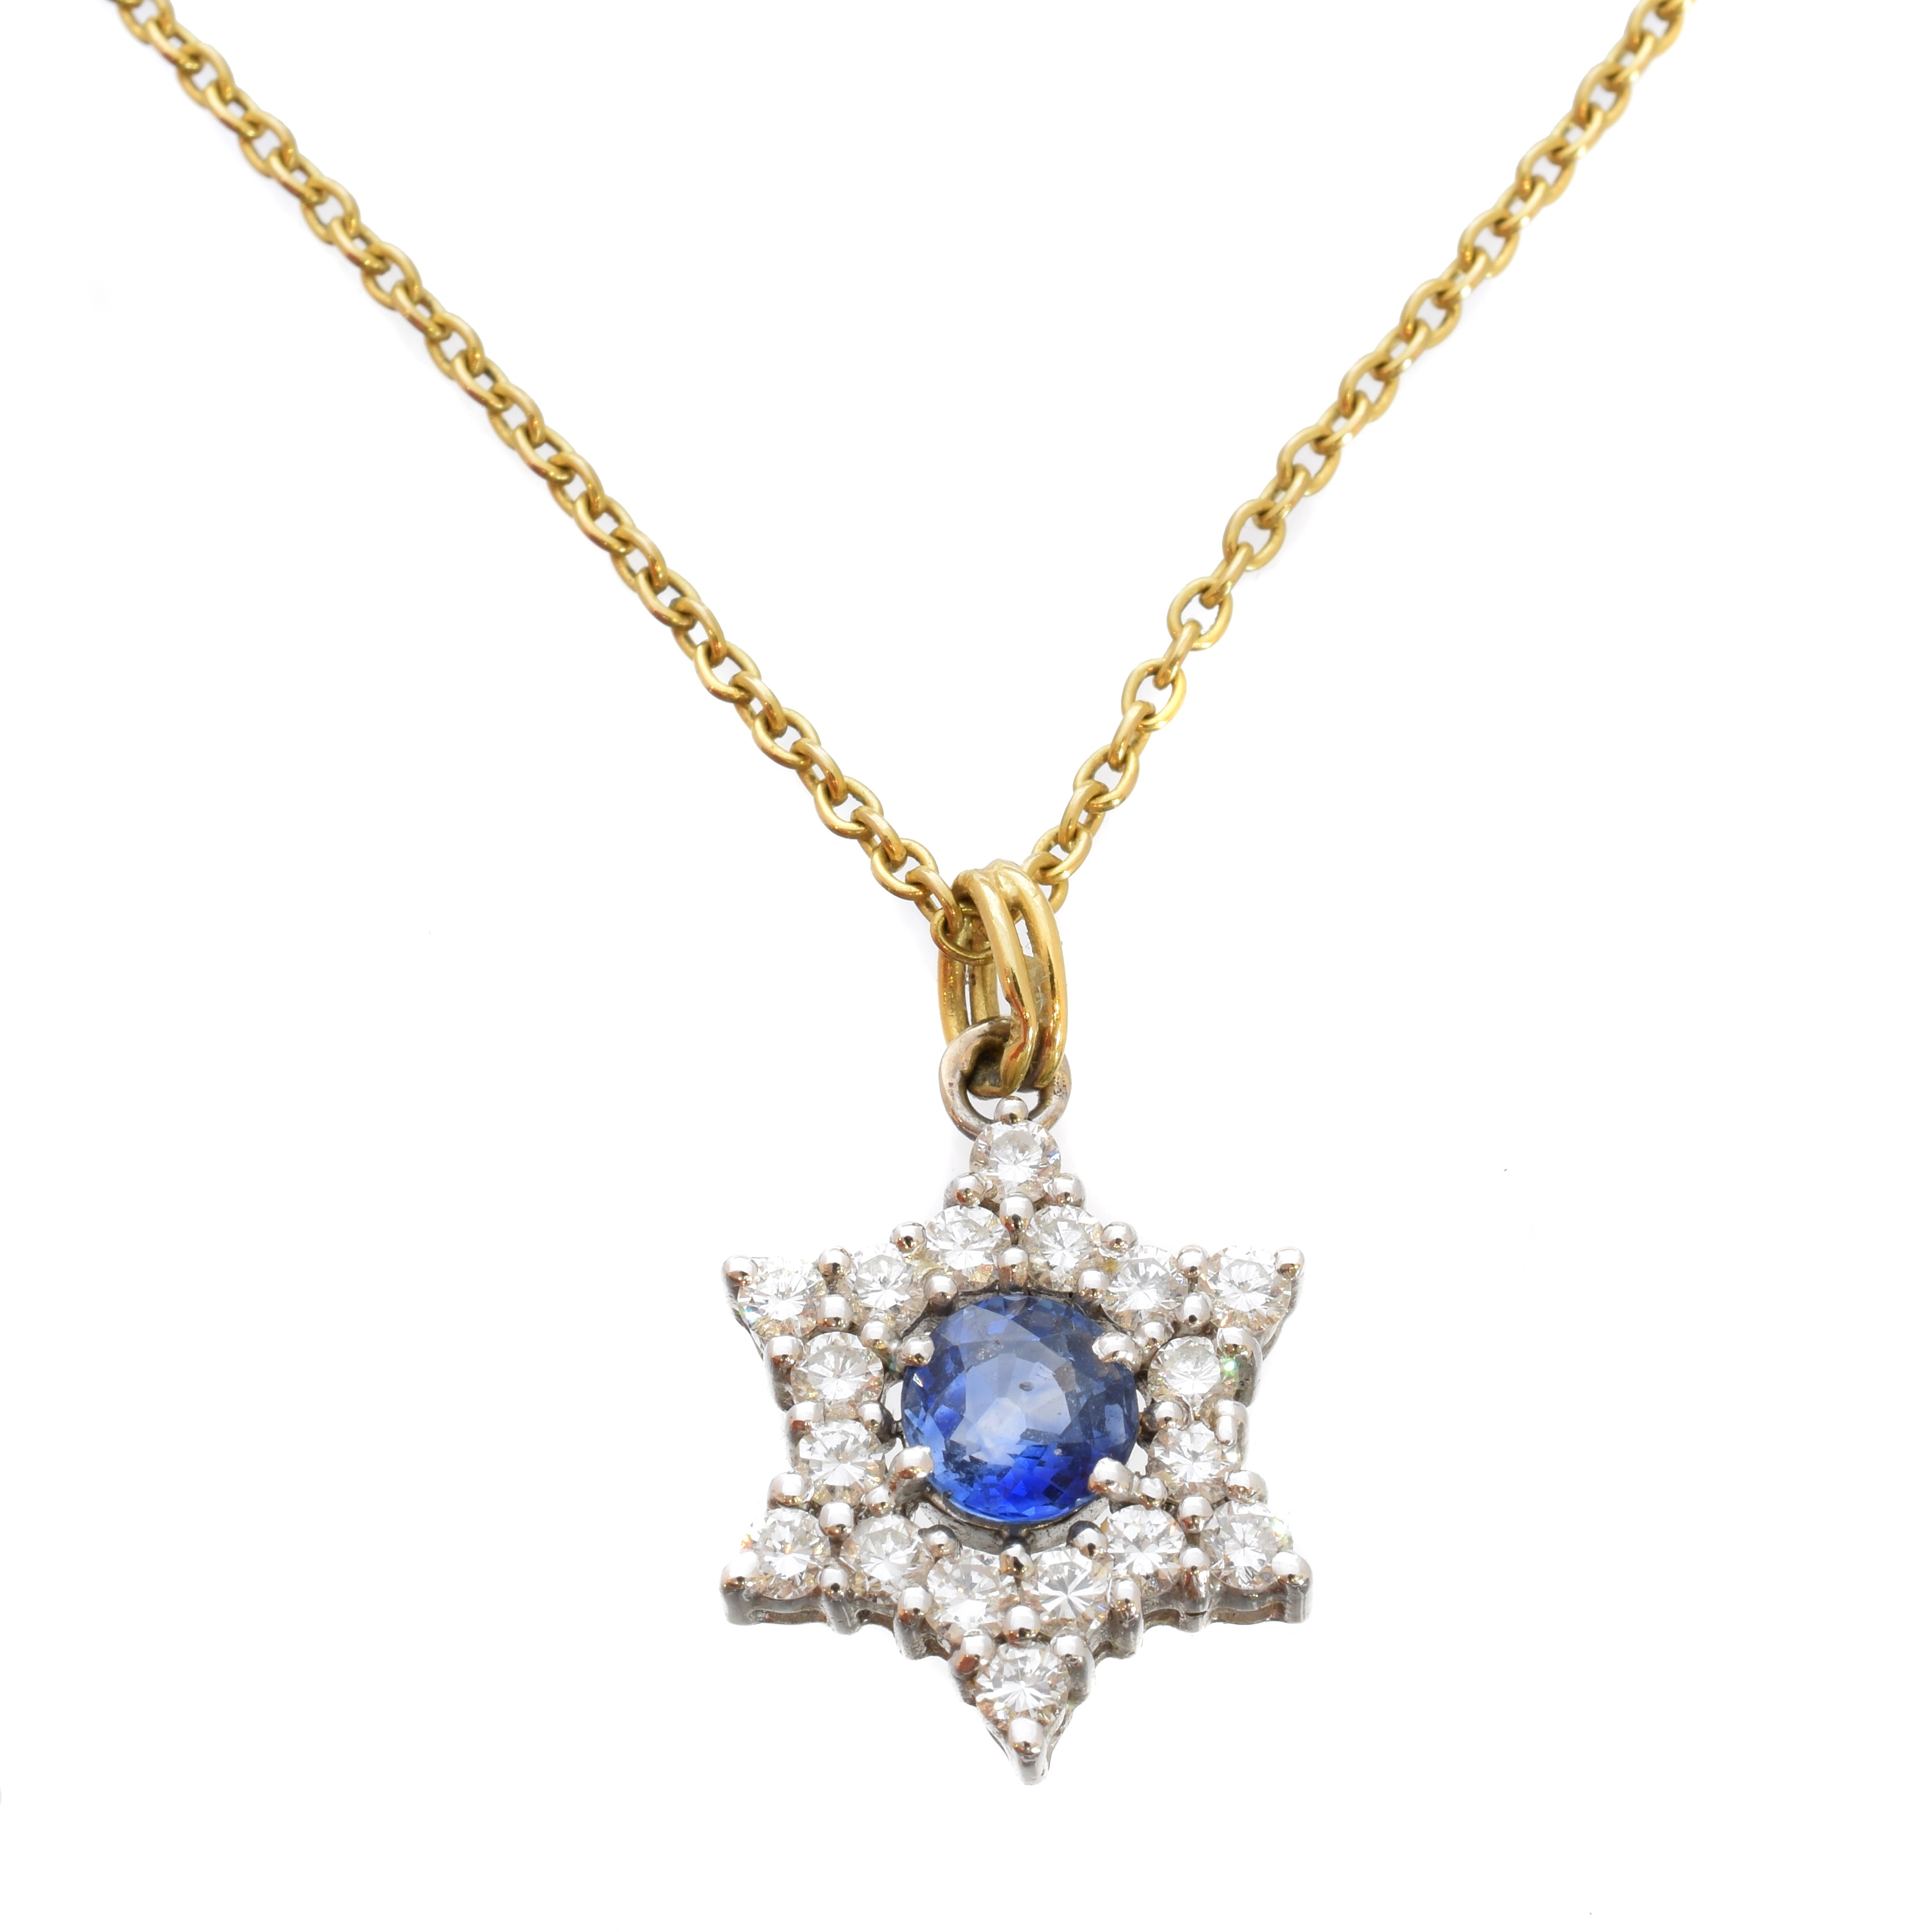 A sapphire and diamond pendant, the circular shape sapphire within a brilliant cut diamond star shape surround, stamped 750, suspended from a Cropp & Farr 9ct gold chain, estimated total diamond weight 0.55ct, length of pendant 2.2cm, length of chain 41cm, gross weight 4.4g.